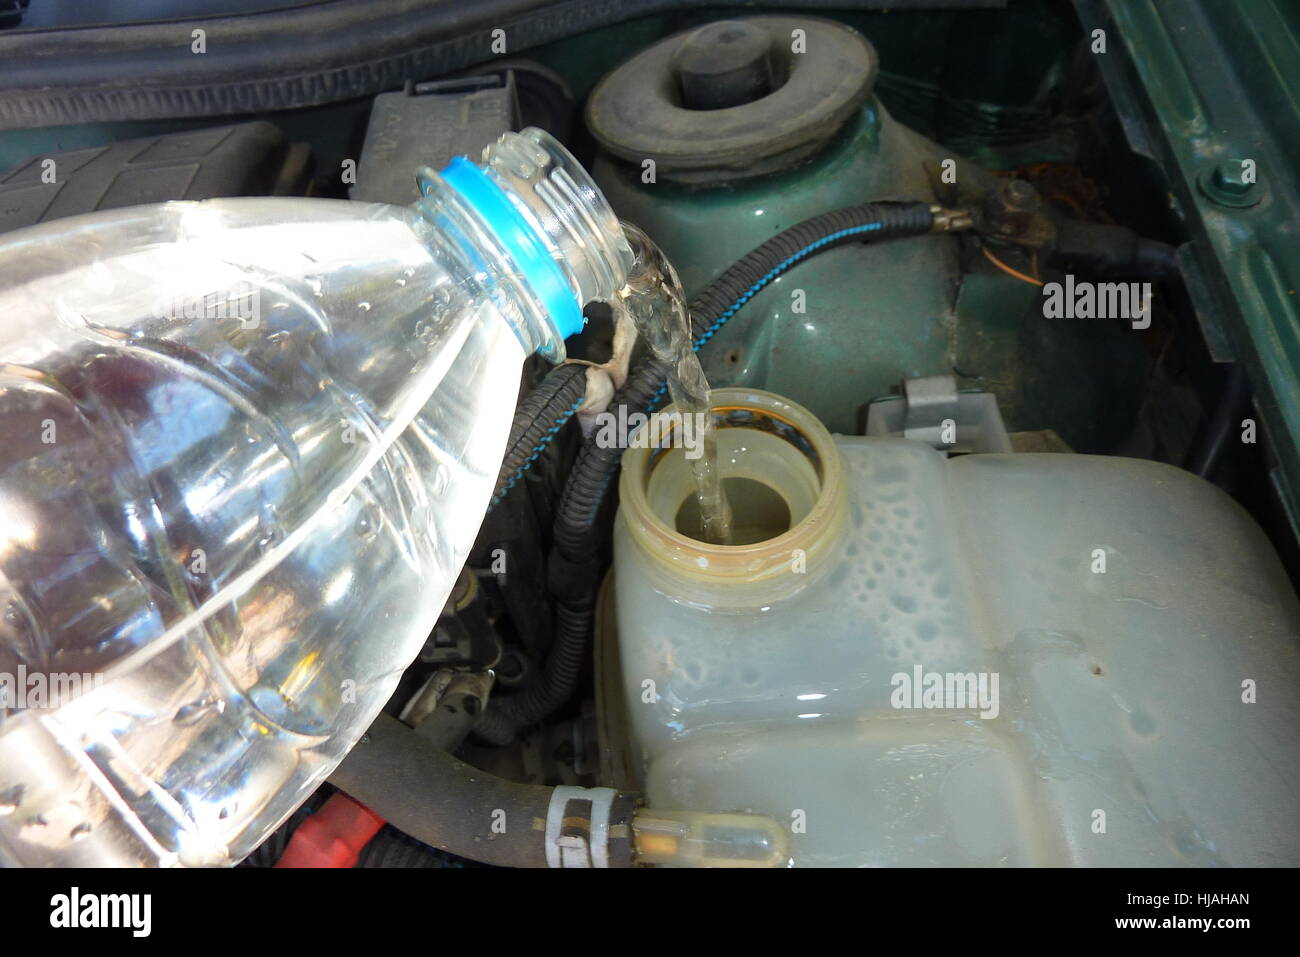 hight resolution of car automobile vehicle means of travel motor vehicle breakdown mould